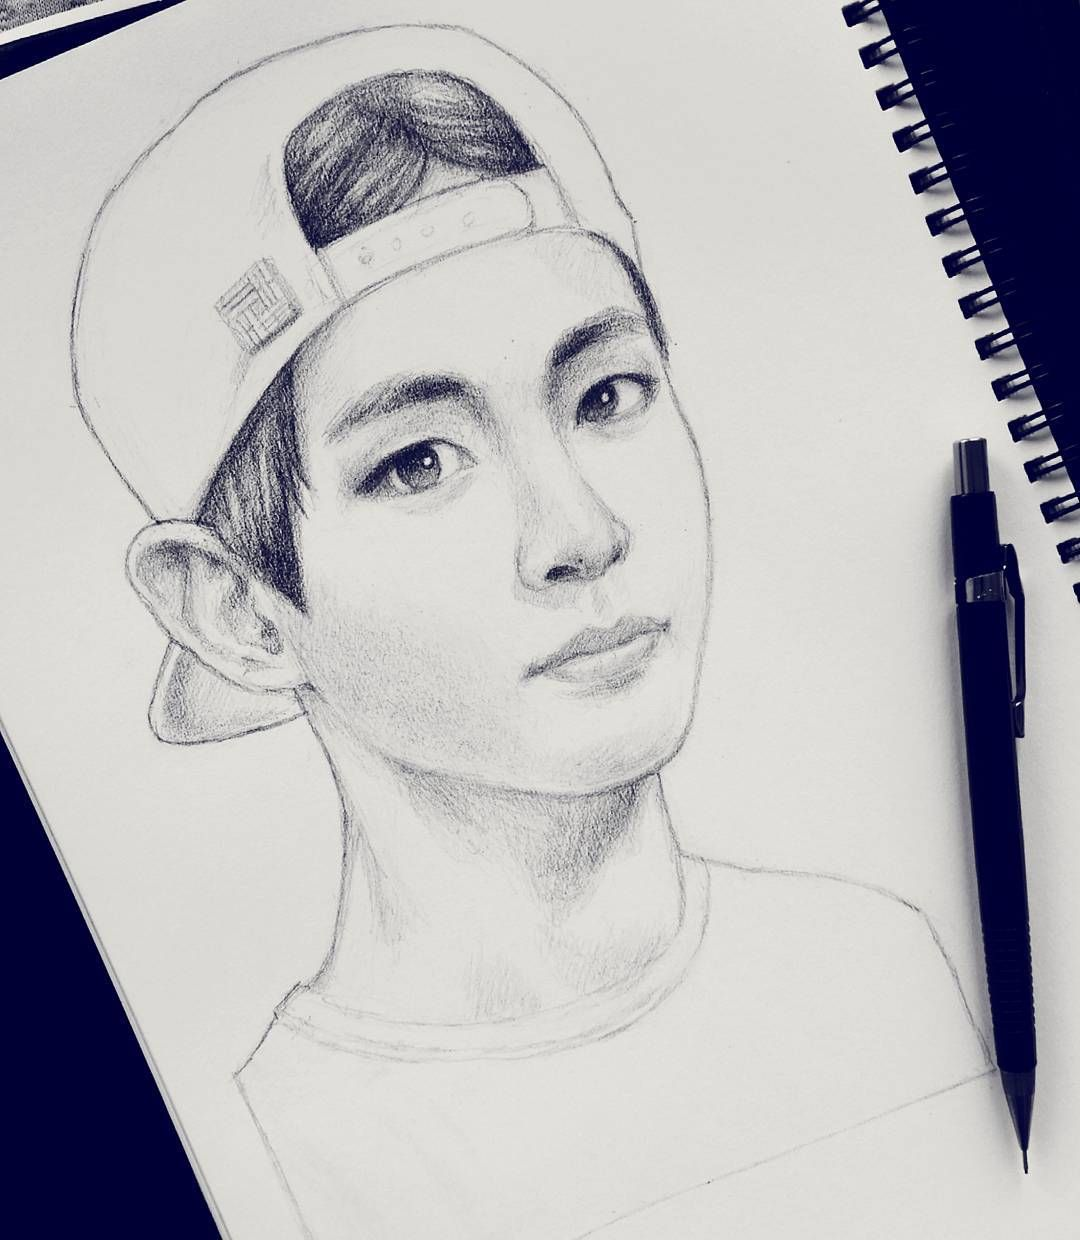 """""""Sketching Taehyung  Hi guys hope you all are doing well, eat lots of fruit and have a nice day^^"""""""